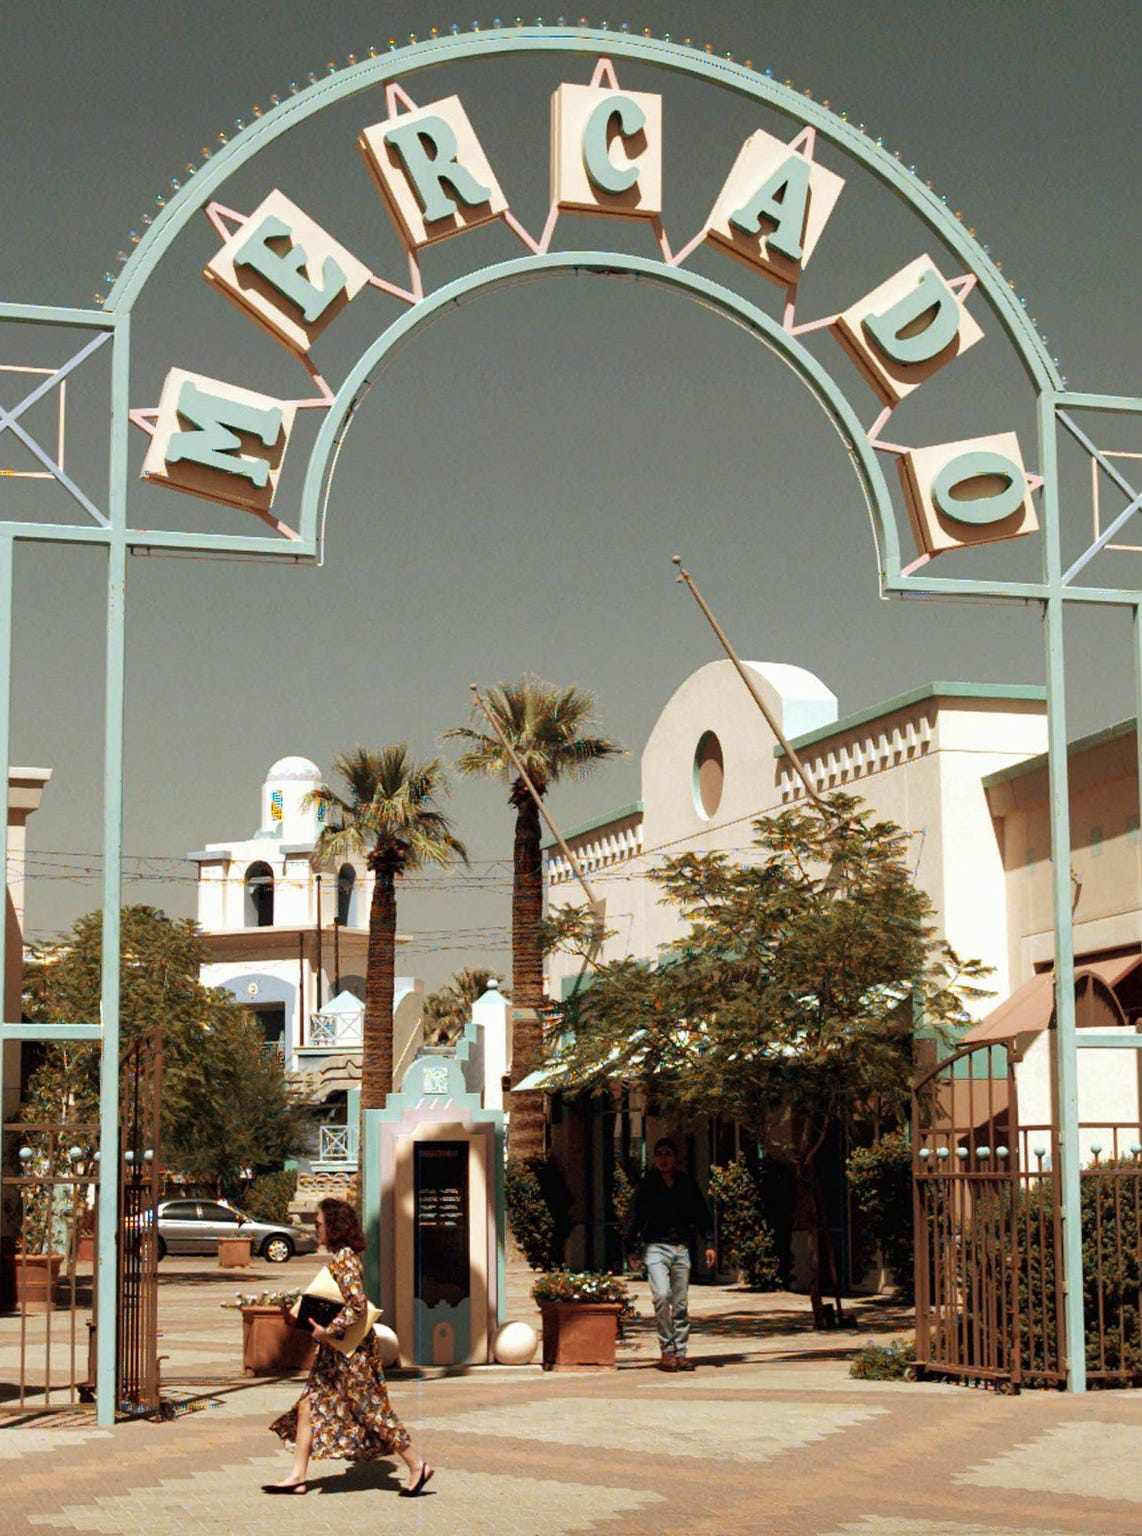 A woman walks past one of the entrances to the Mercado, a downtown shopping complex in Phoenix on Sept. 20, 1995.  Arizona Gov. Fife Symington  built the complex, which later figured into a bankruptcy and a federal investigation.